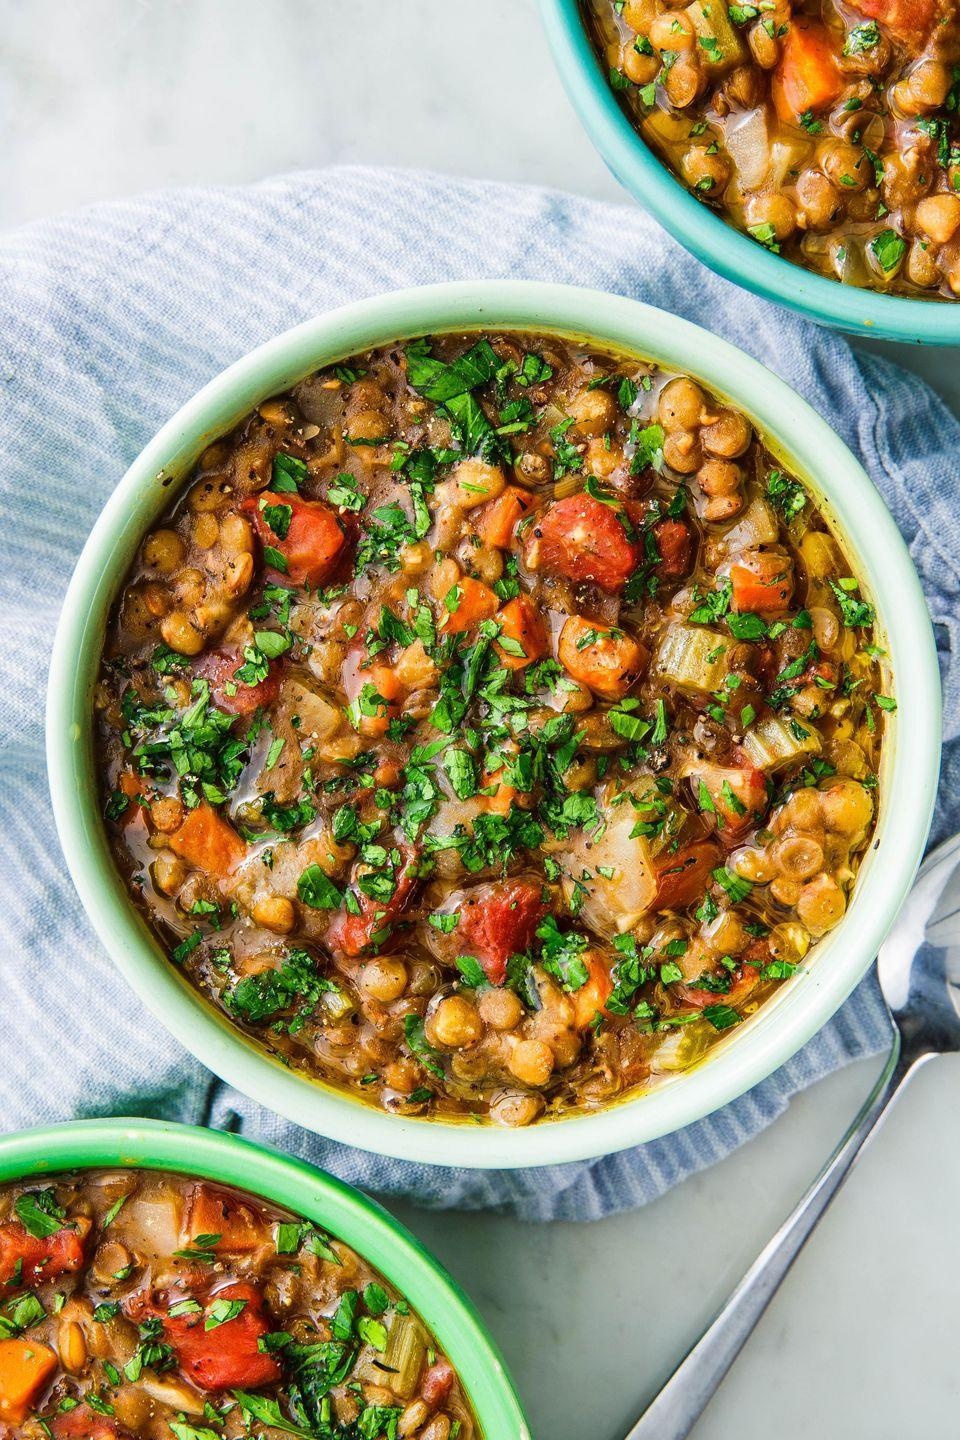 "<p>The faster version of this healthy, cozy soup.</p><p>Get the recipe from <a href=""https://www.delish.com/cooking/recipe-ideas/a25240121/instant-pot-lentil-soup/"" rel=""nofollow noopener"" target=""_blank"" data-ylk=""slk:Delish"" class=""link rapid-noclick-resp"">Delish</a>.</p>"